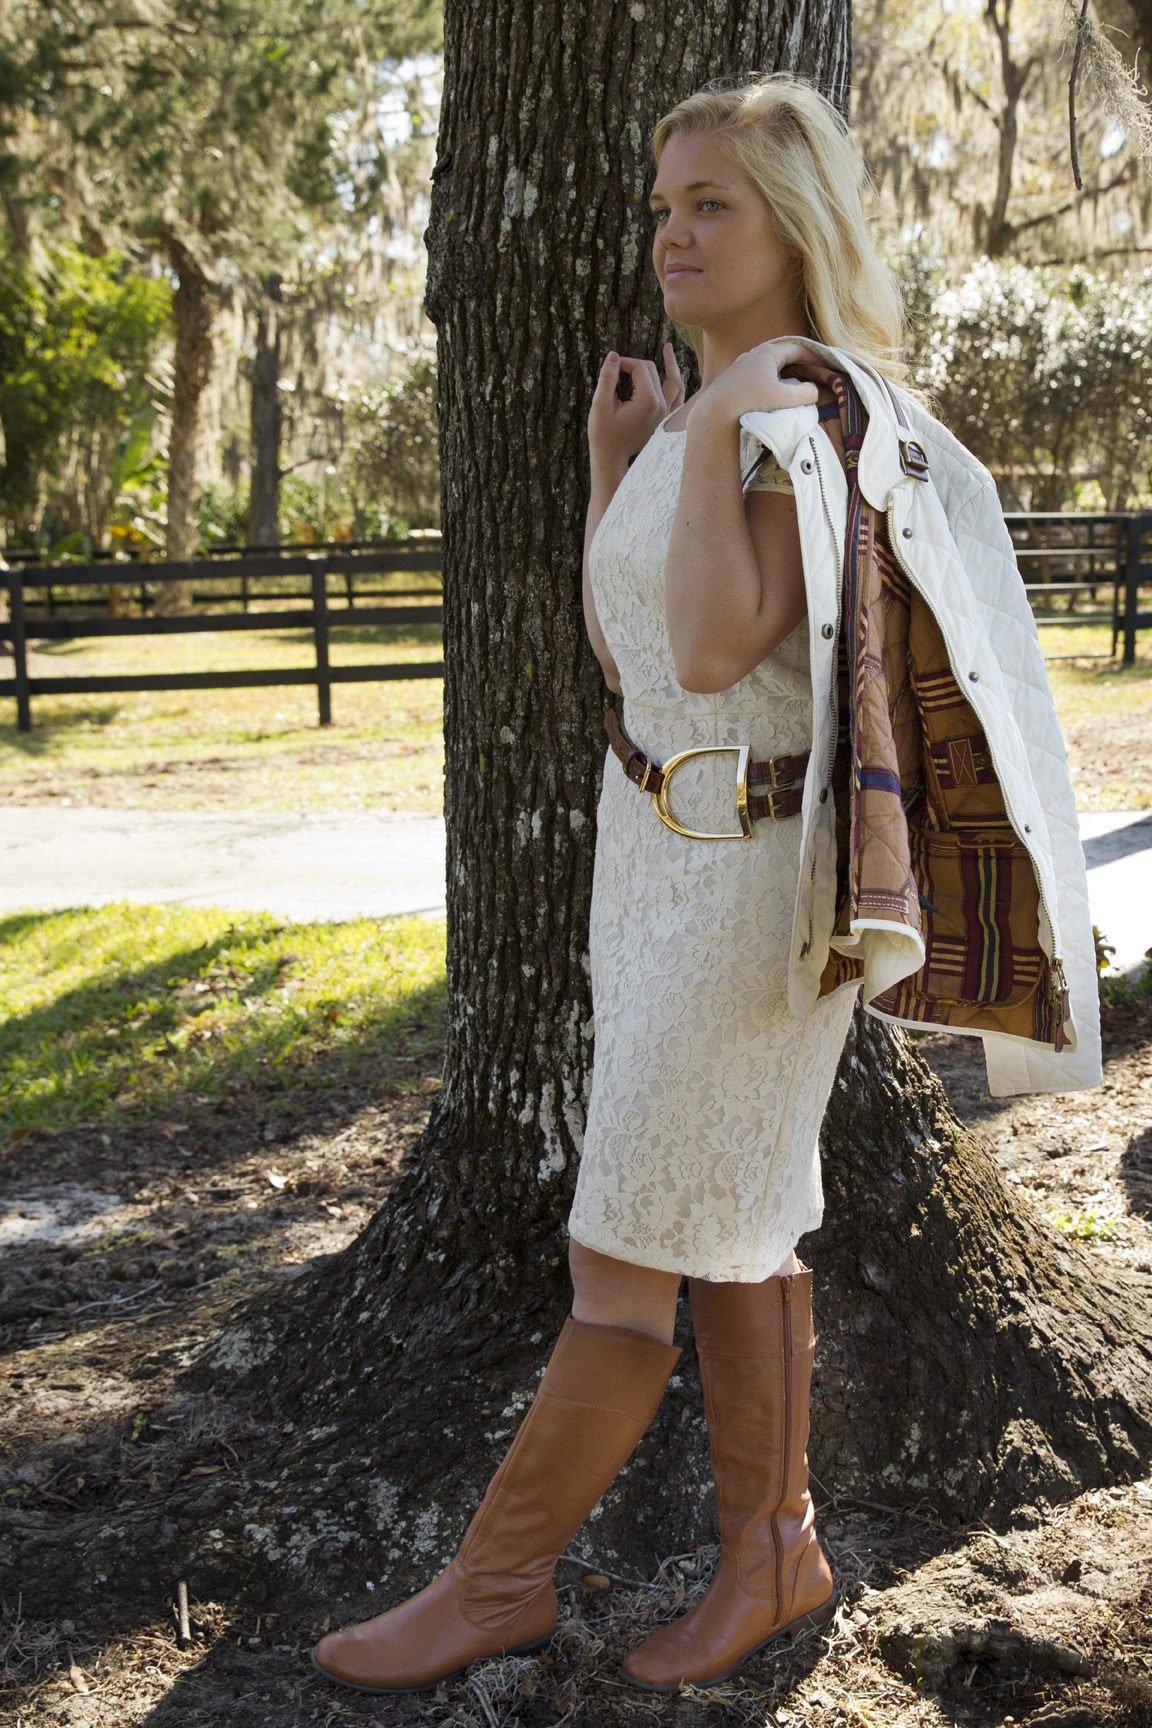 Lace, Leather, Chestnut and Teal: Fall Equestrian Fashion ...